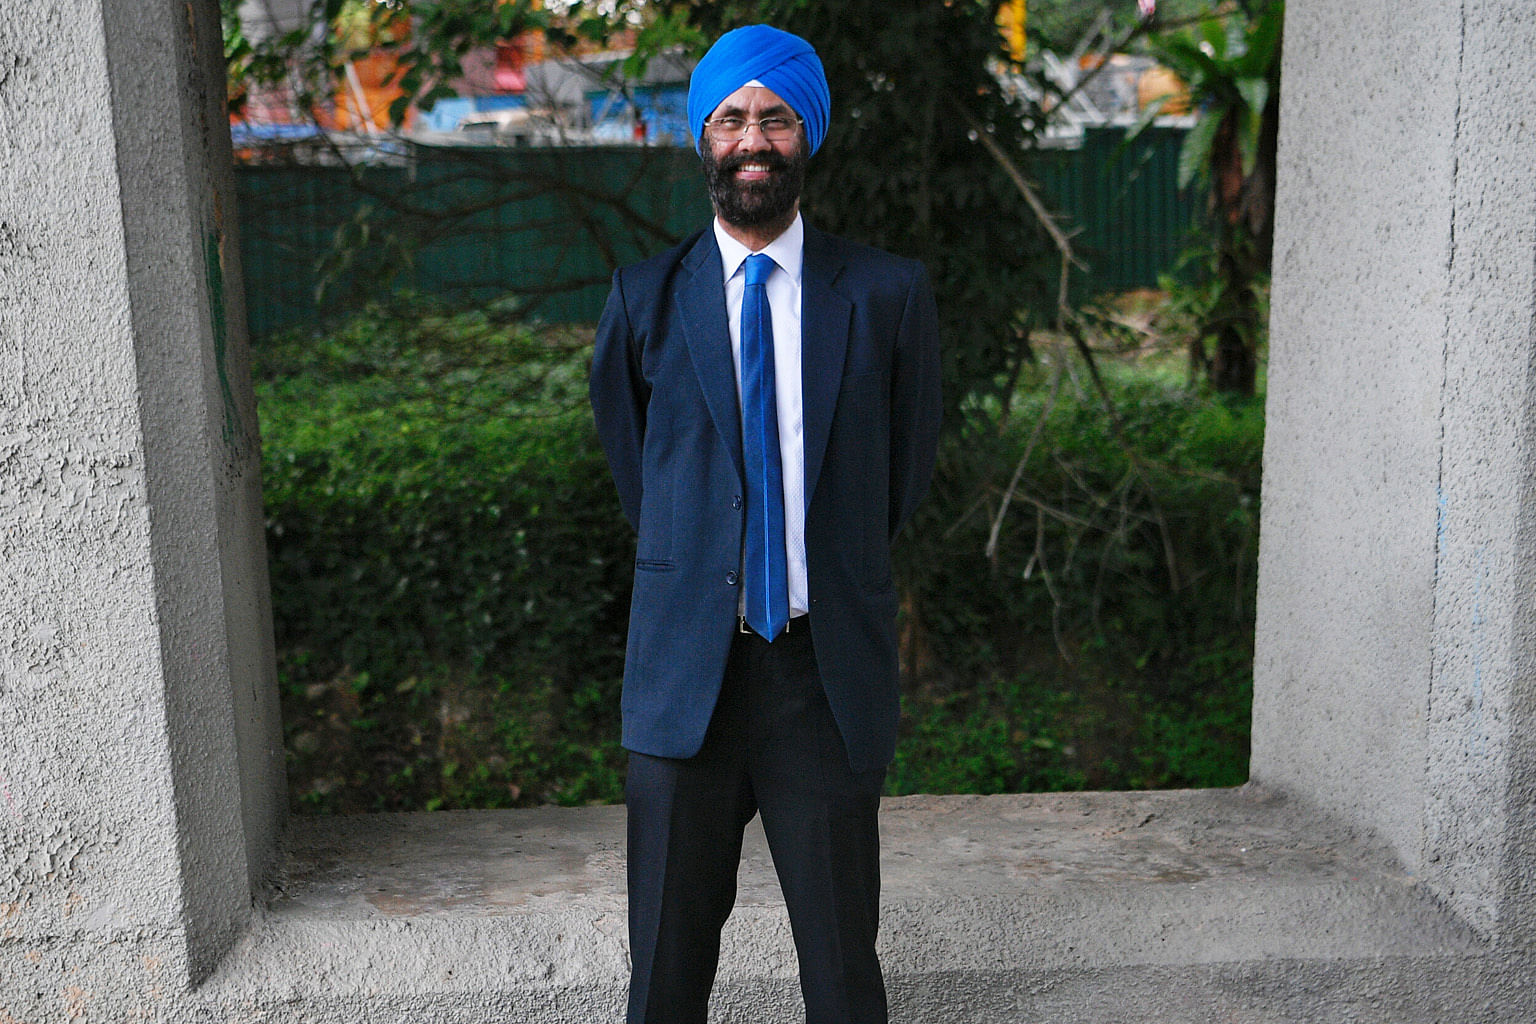 Every December for the past 14 years, lawyer Satwant Singh and a team of volunteers have lent a hand to schools in Punjab, India. They rebuild and repair schools that need upgrading.